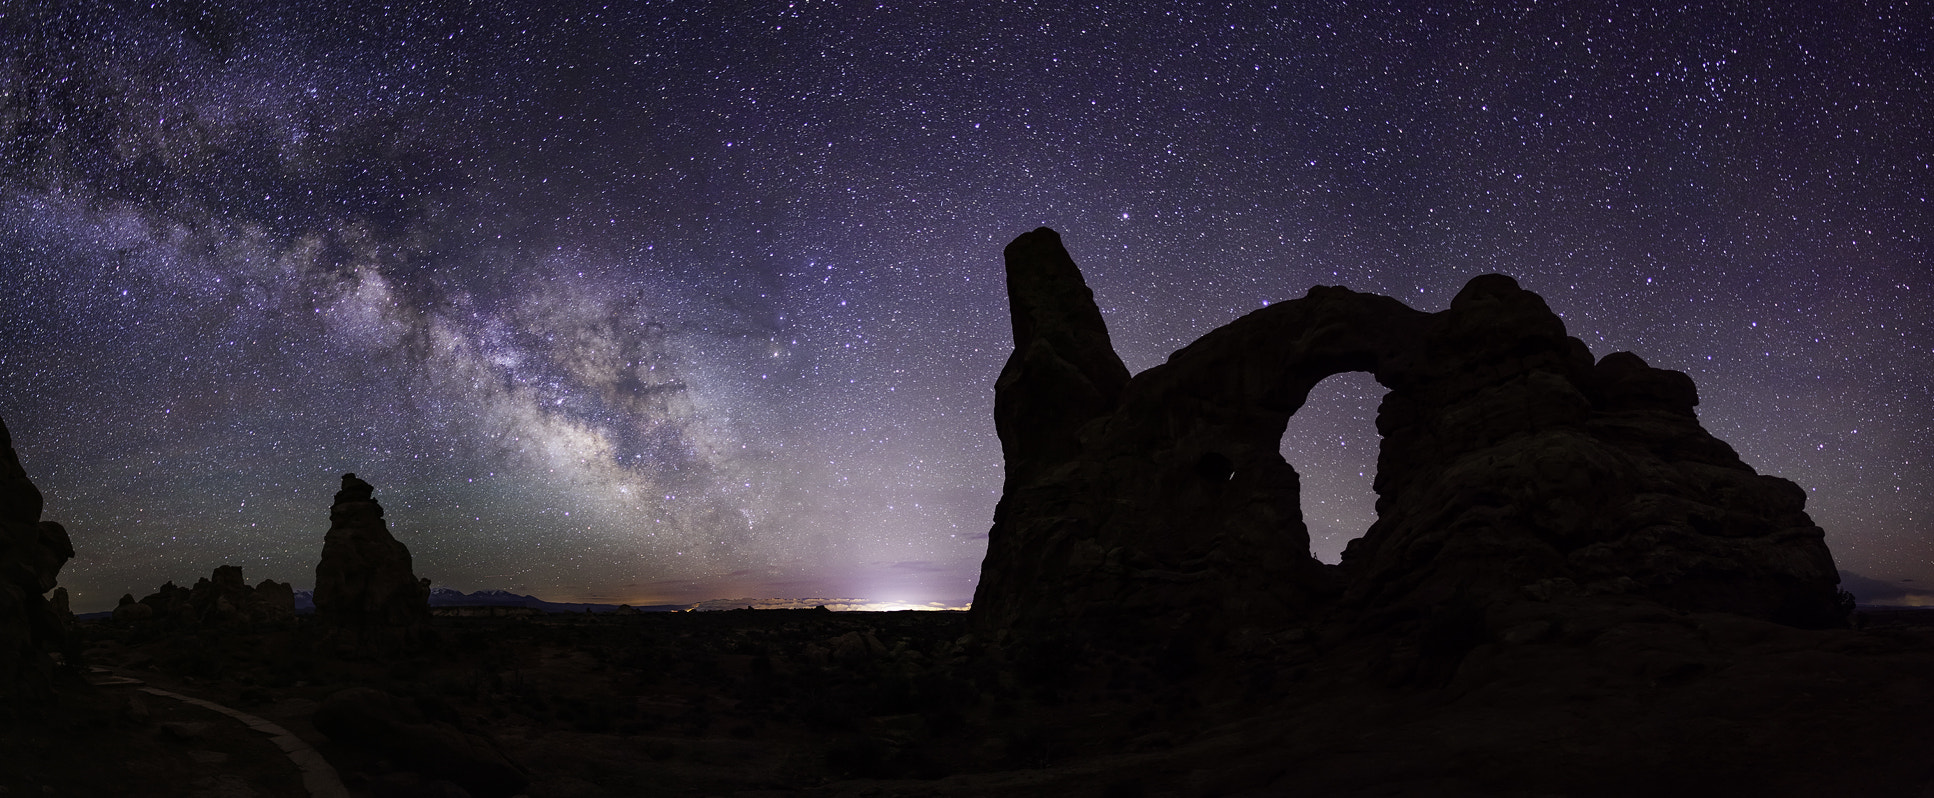 Photograph Turret Arch Nightly View by Scott Ackerman on 500px